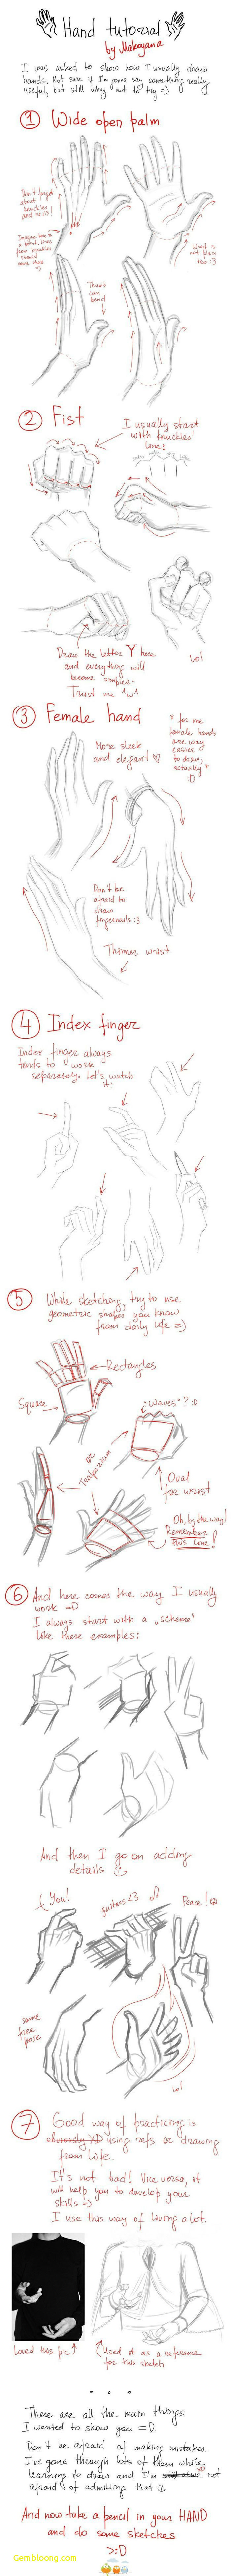 how to draw a hand, step by step, diy tutorials, easy drawings step by step, different shapes